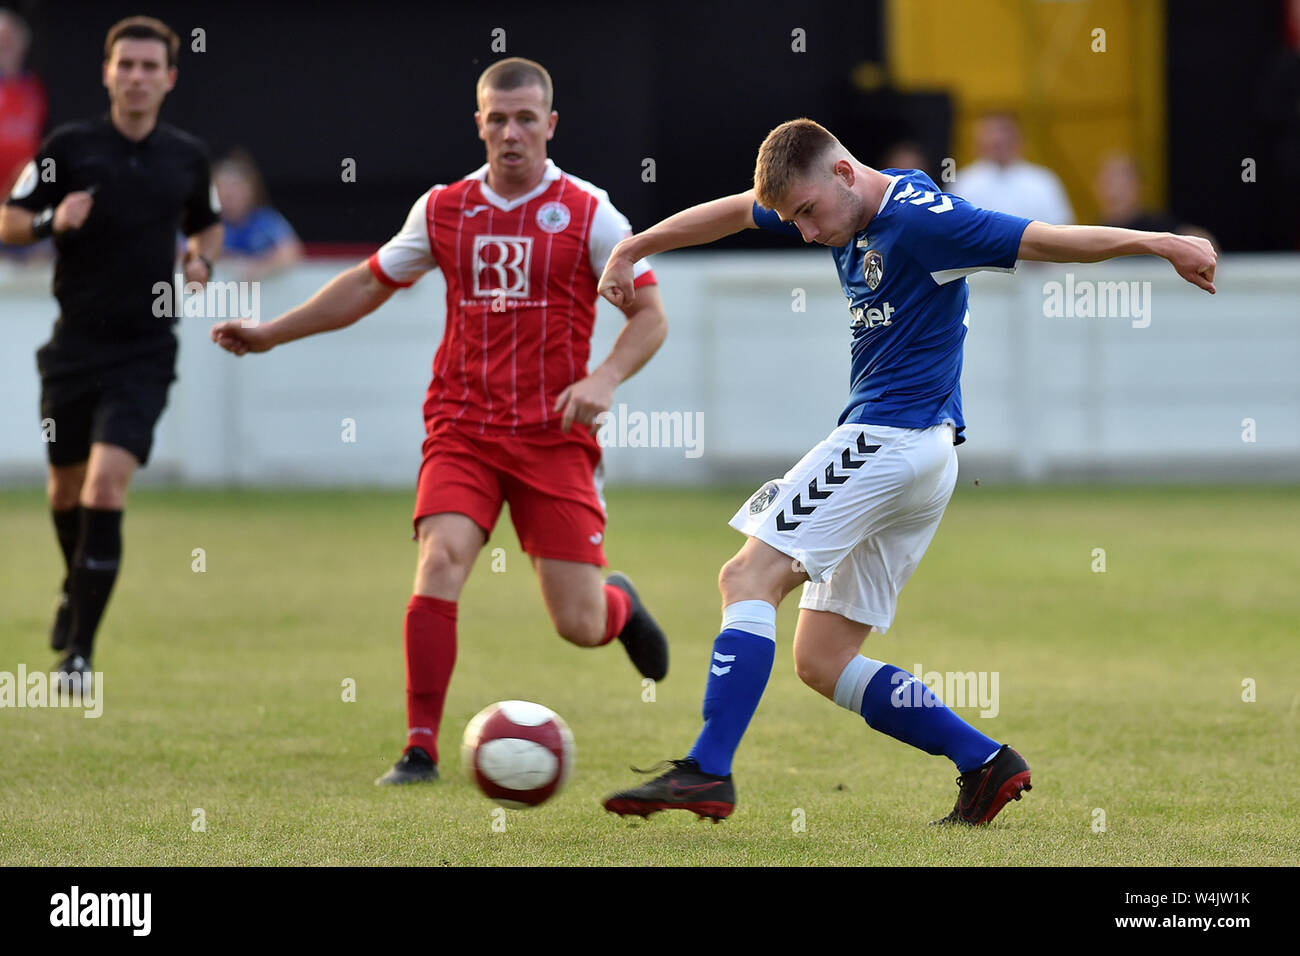 ASHTON UNDER LYNE, UK. 23rd July, 2019. Oldham Athletic's Reece Gaskell in action during the Pre-season Friendly match between Ashton United and Oldham Athletic at Hurst Cross Stadium, Ashton under Lyne on Tuesday 23rd July 2019. (Credit: Eddie Garvey | MI News) Credit: MI News & Sport /Alamy Live News Stock Photo